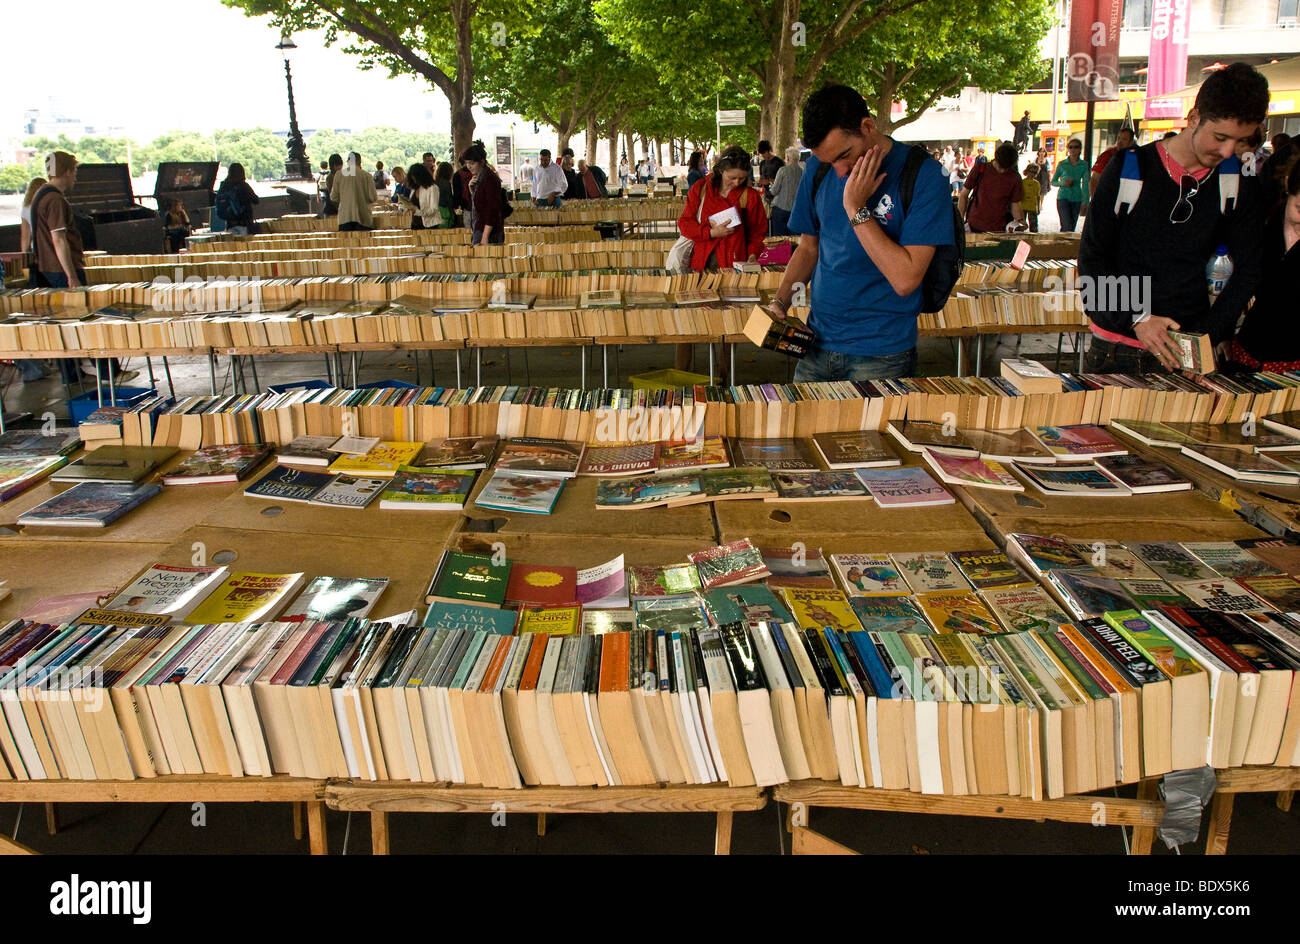 A selection of secondhand books at the open air Southbank Book Market, London - Stock Image